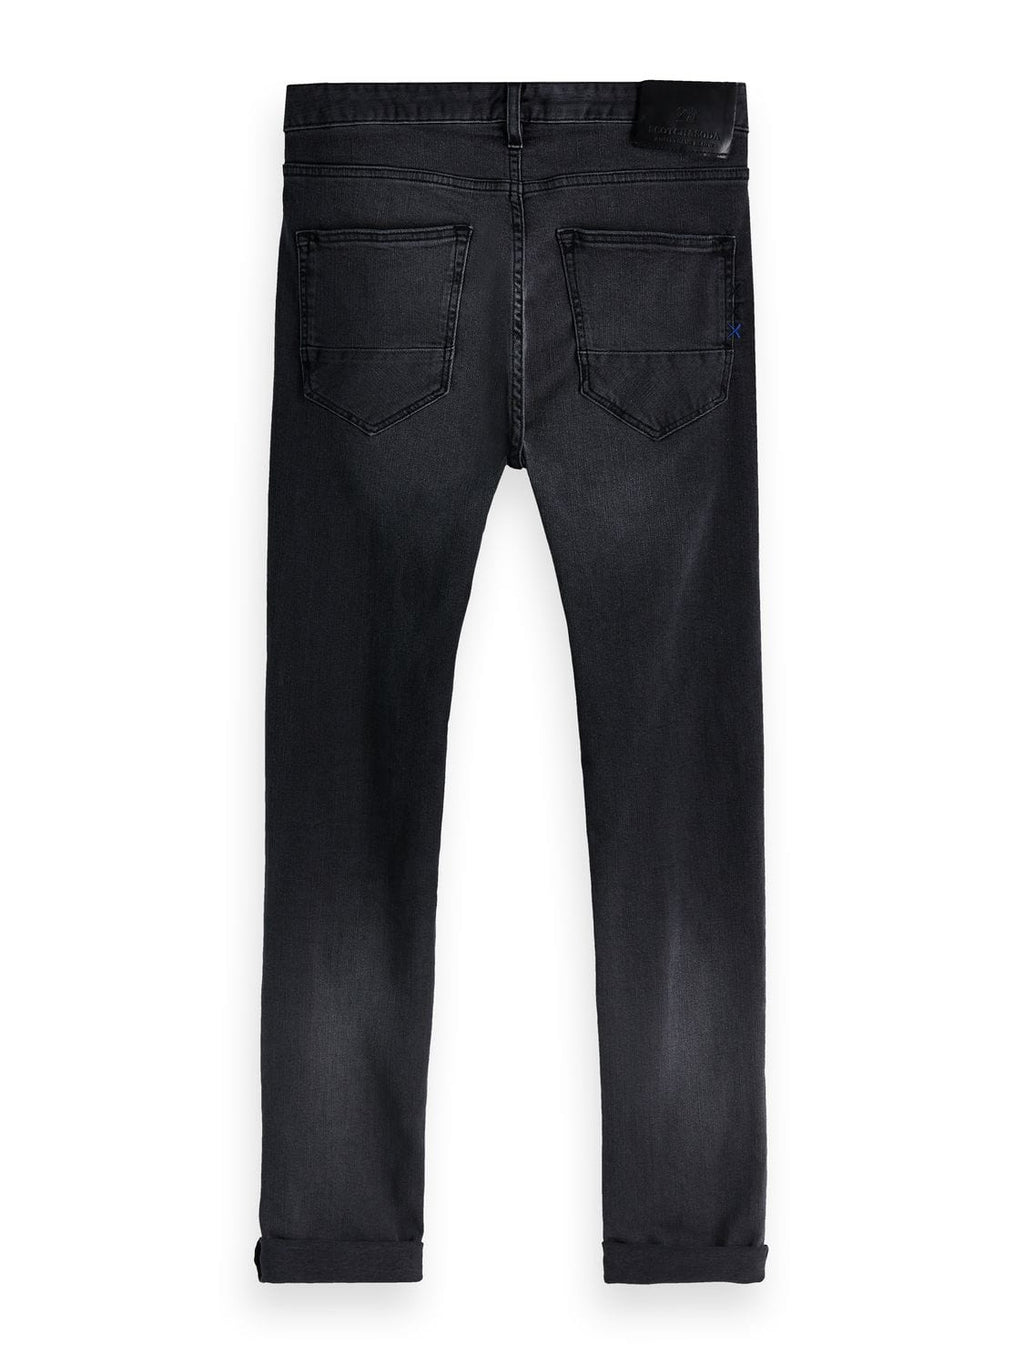 Scotch & Soda Skim Jeans - Fallen Ashes